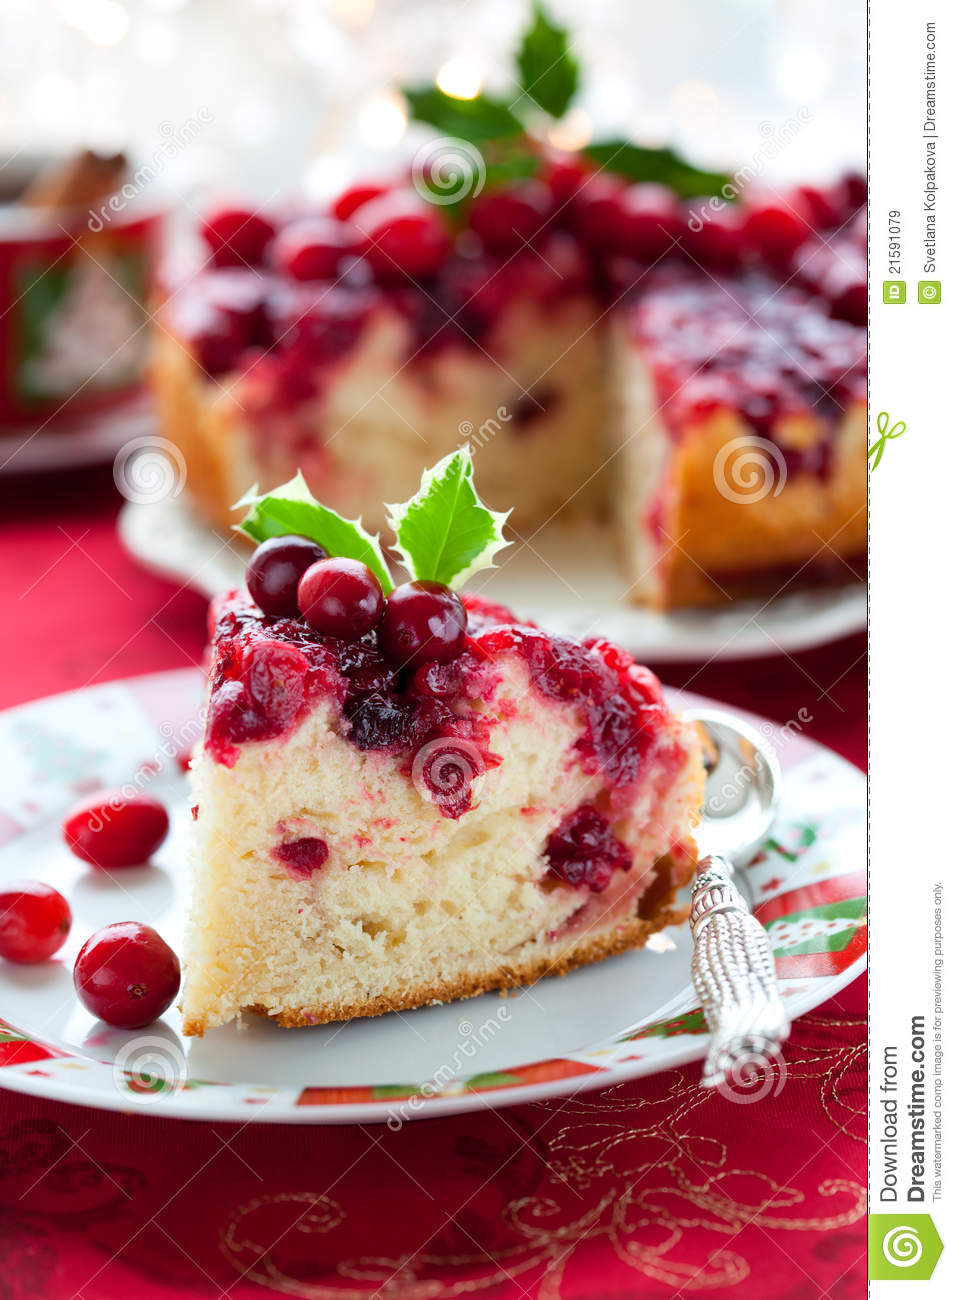 Cranberry Upside Down Cake Royalty Free Stock Images - Image: 21591079